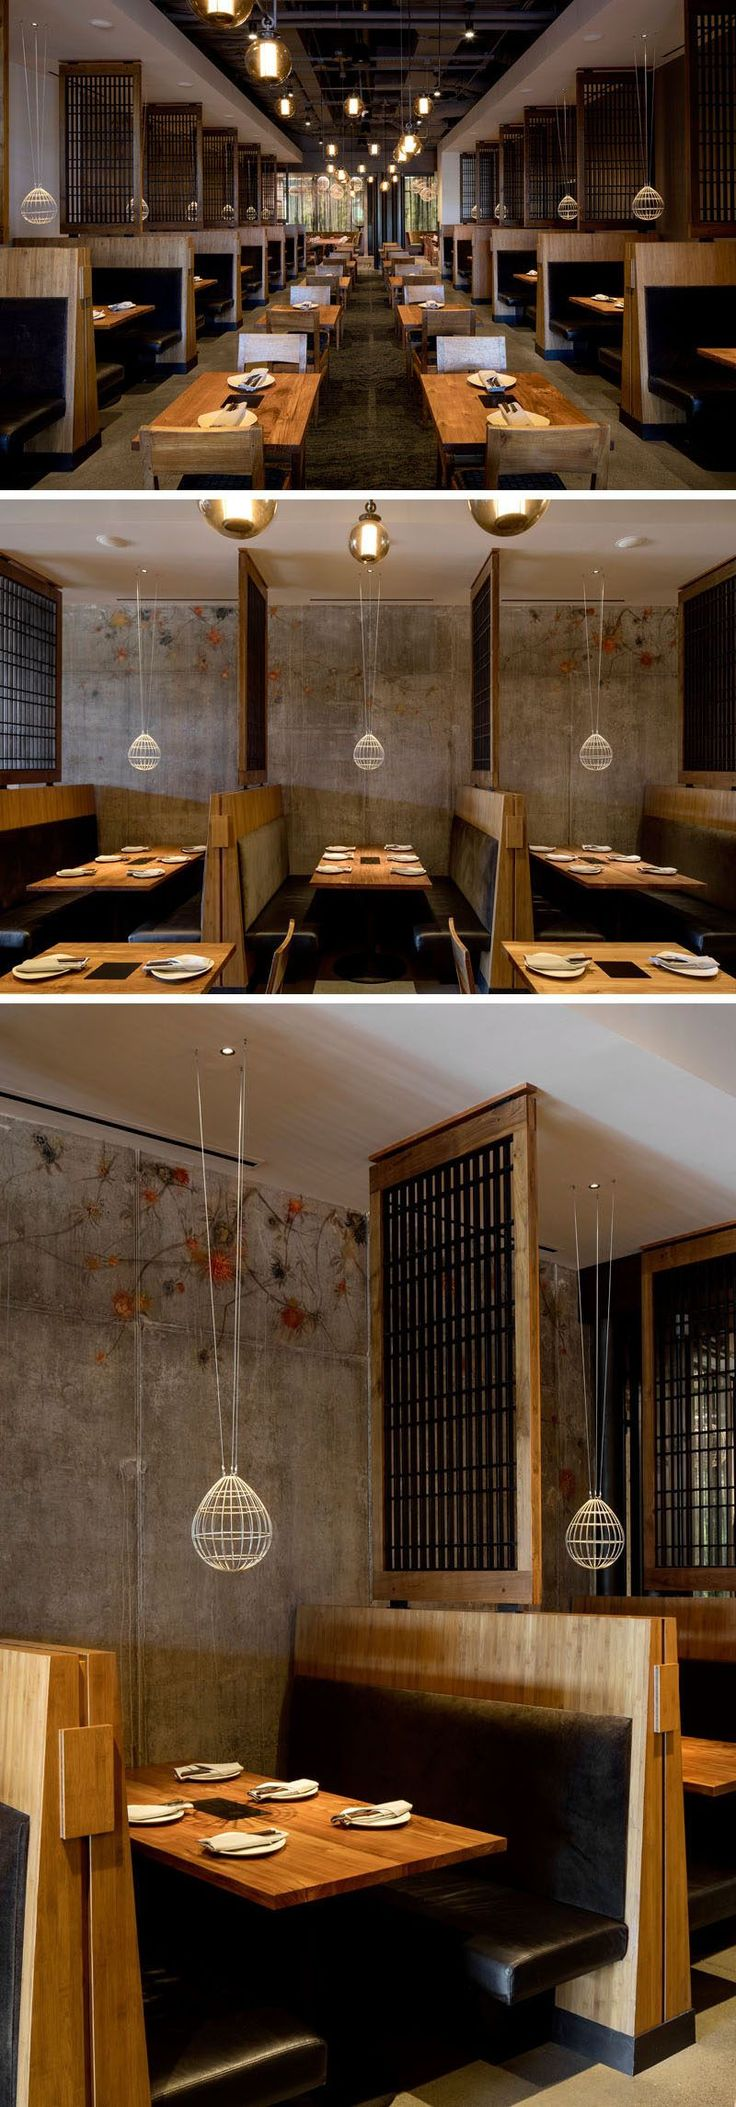 2312 Best Design Images On Pinterest Wall Woodworking And Miniso Golf Desk Lamp Slatted Teak Screens Separate Booths That Line Both Sides Of The Dining Area In This Modern